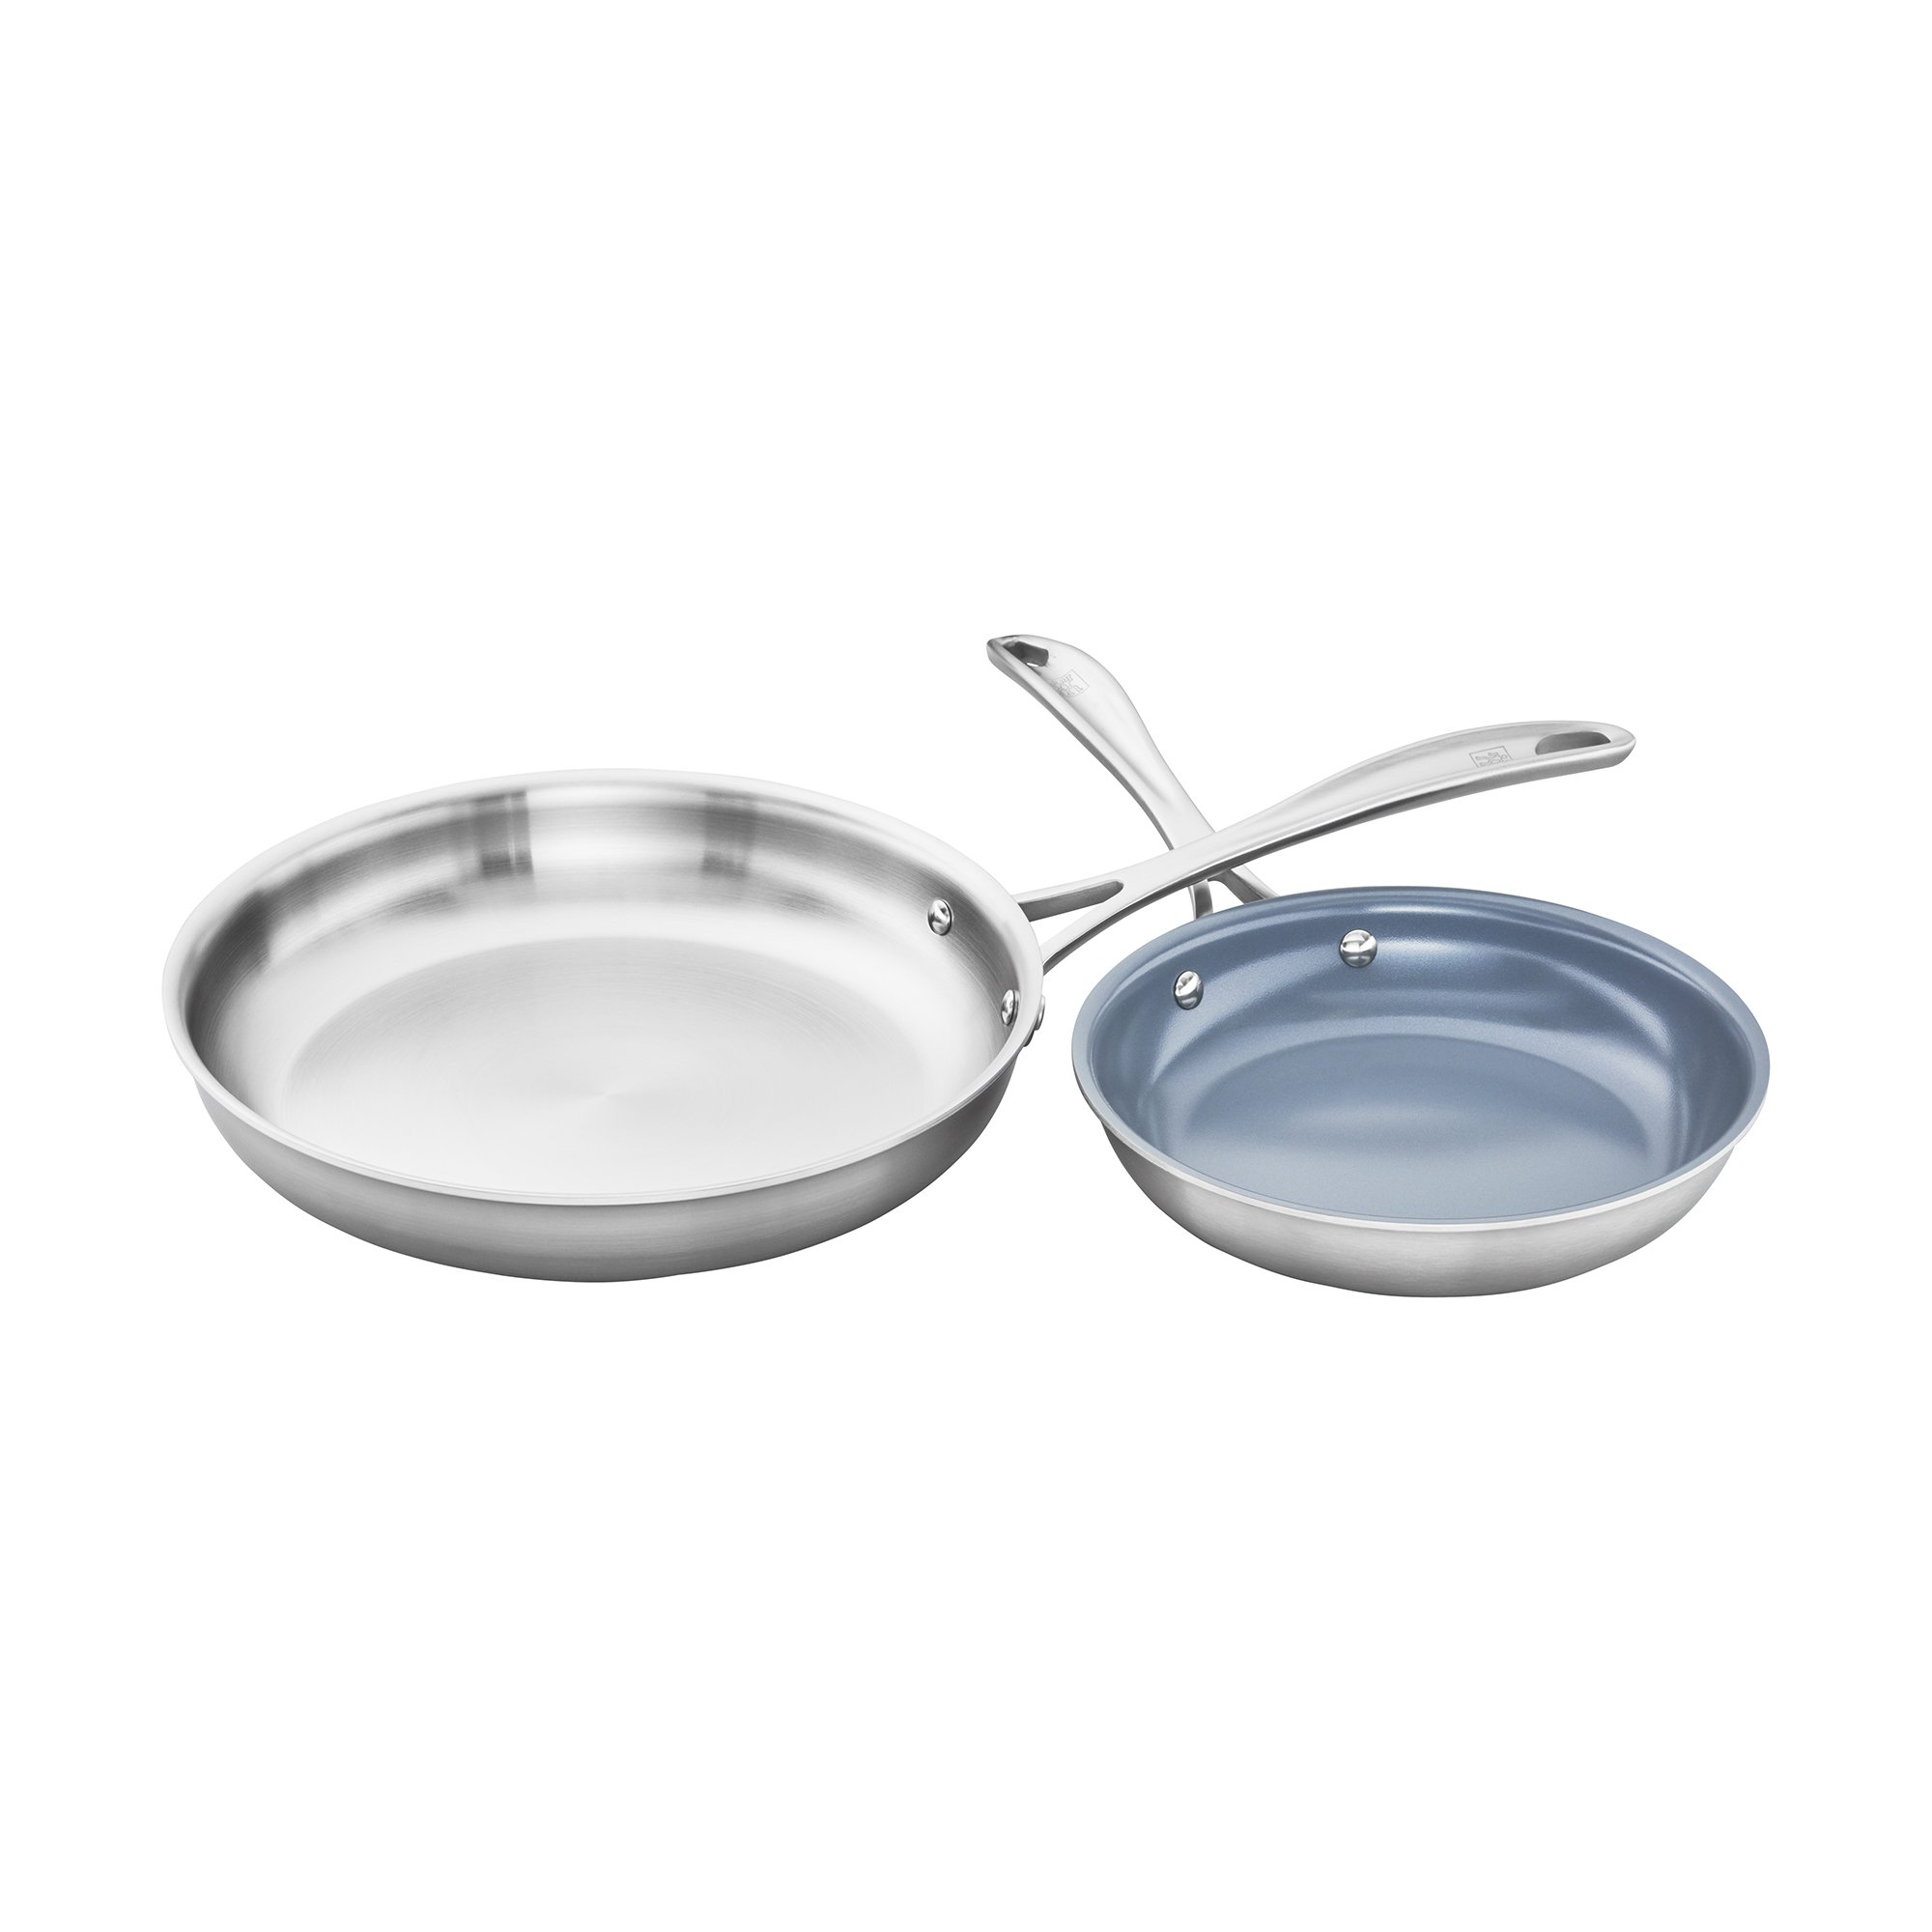 ZWILLING Spirit 3-ply 2-pc Stainless Steel Fry Pan Set